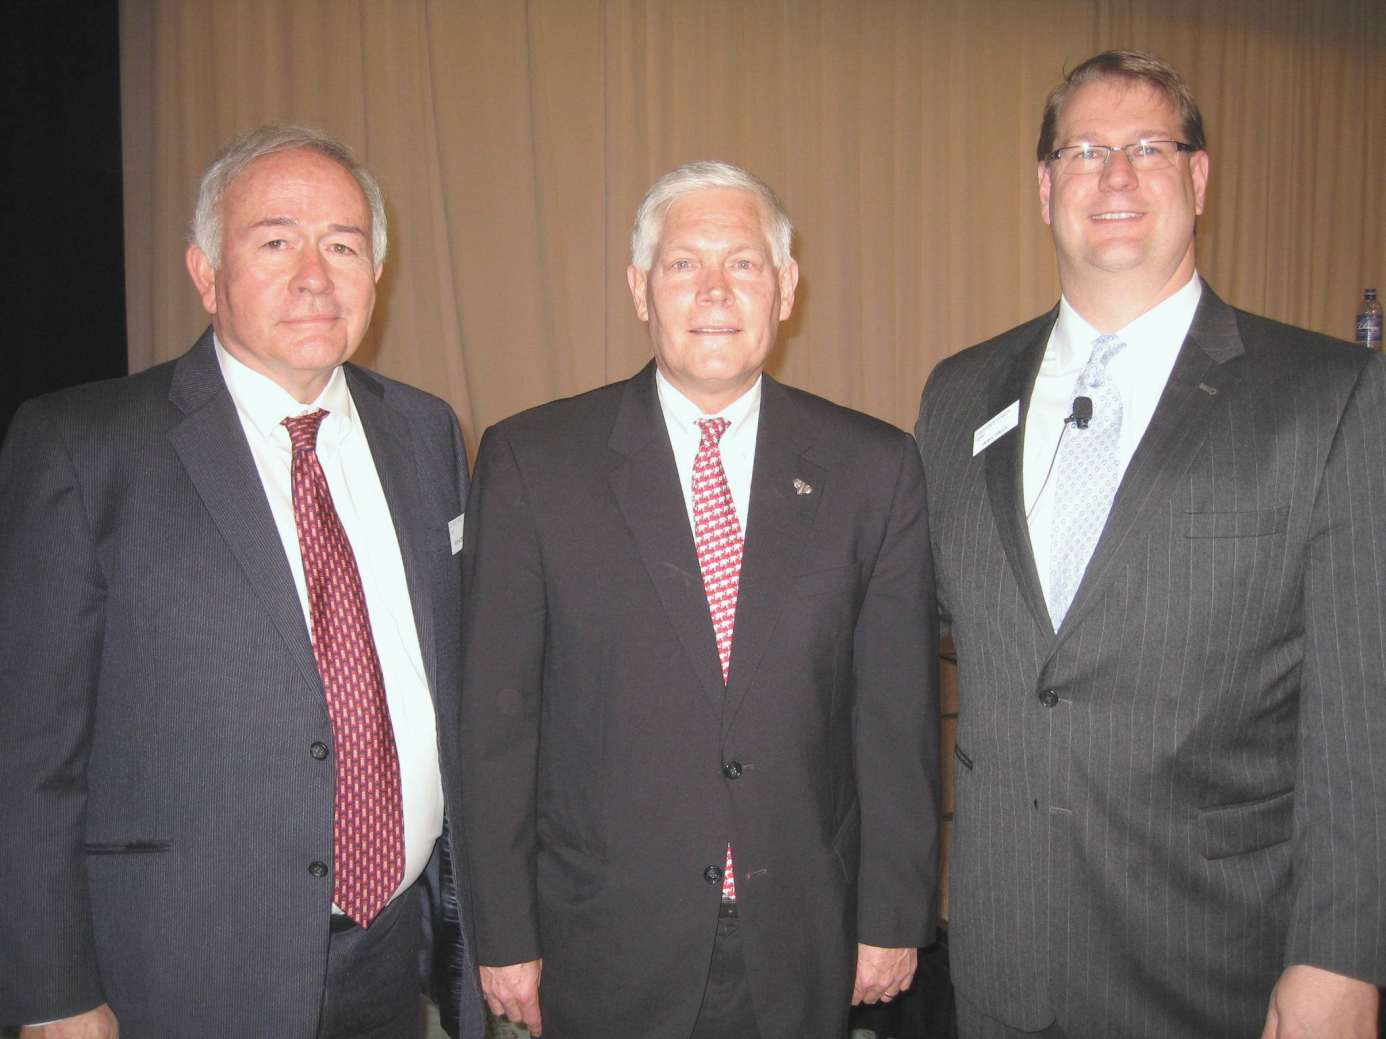 Dr. Bob McTeer, Rep. Pete Sessions and Dory Wiley spoke at banking conference.